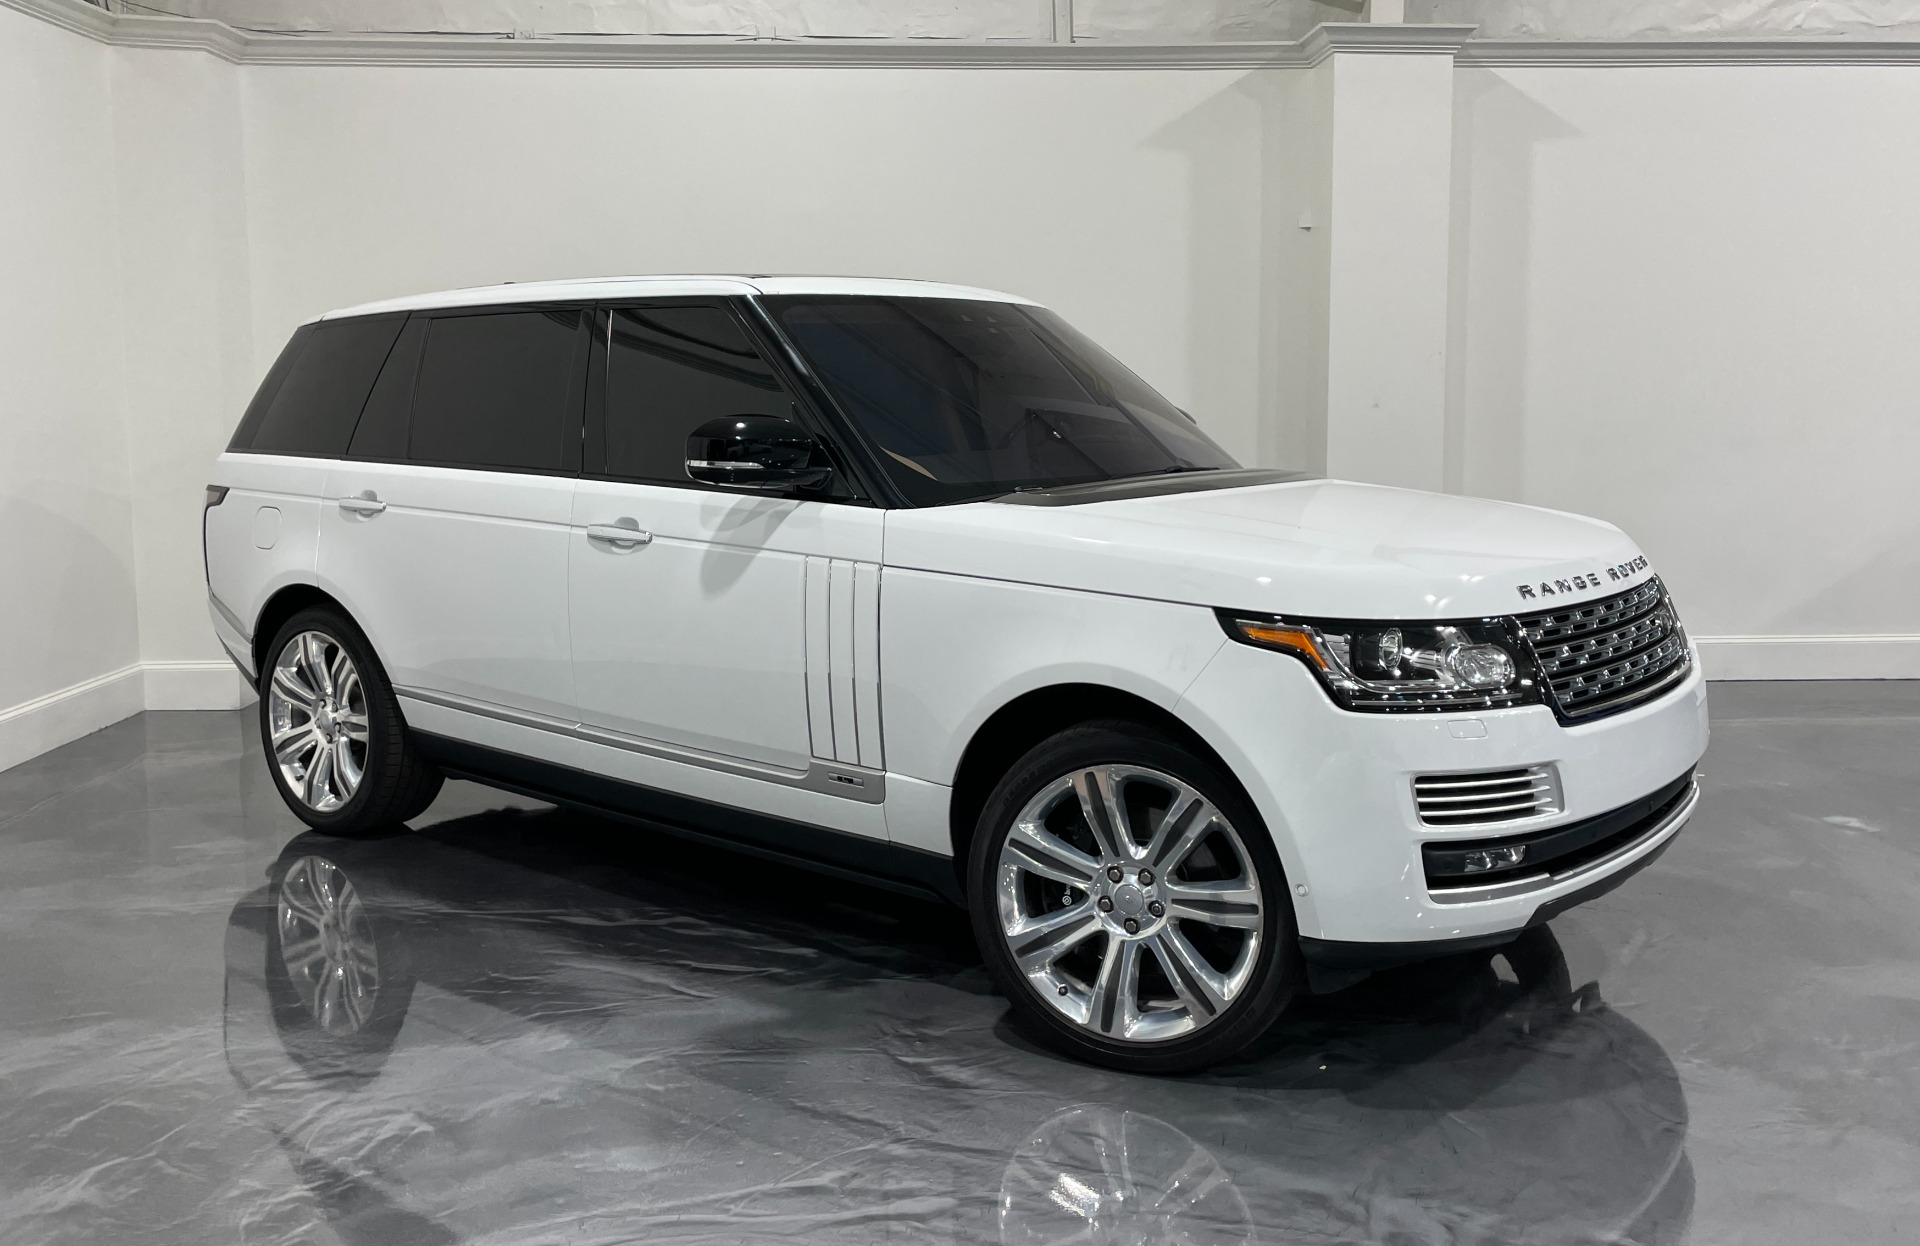 Used 2017 Range Rover Autobiography LWB Autobiography LWB | Peachtree City, GA